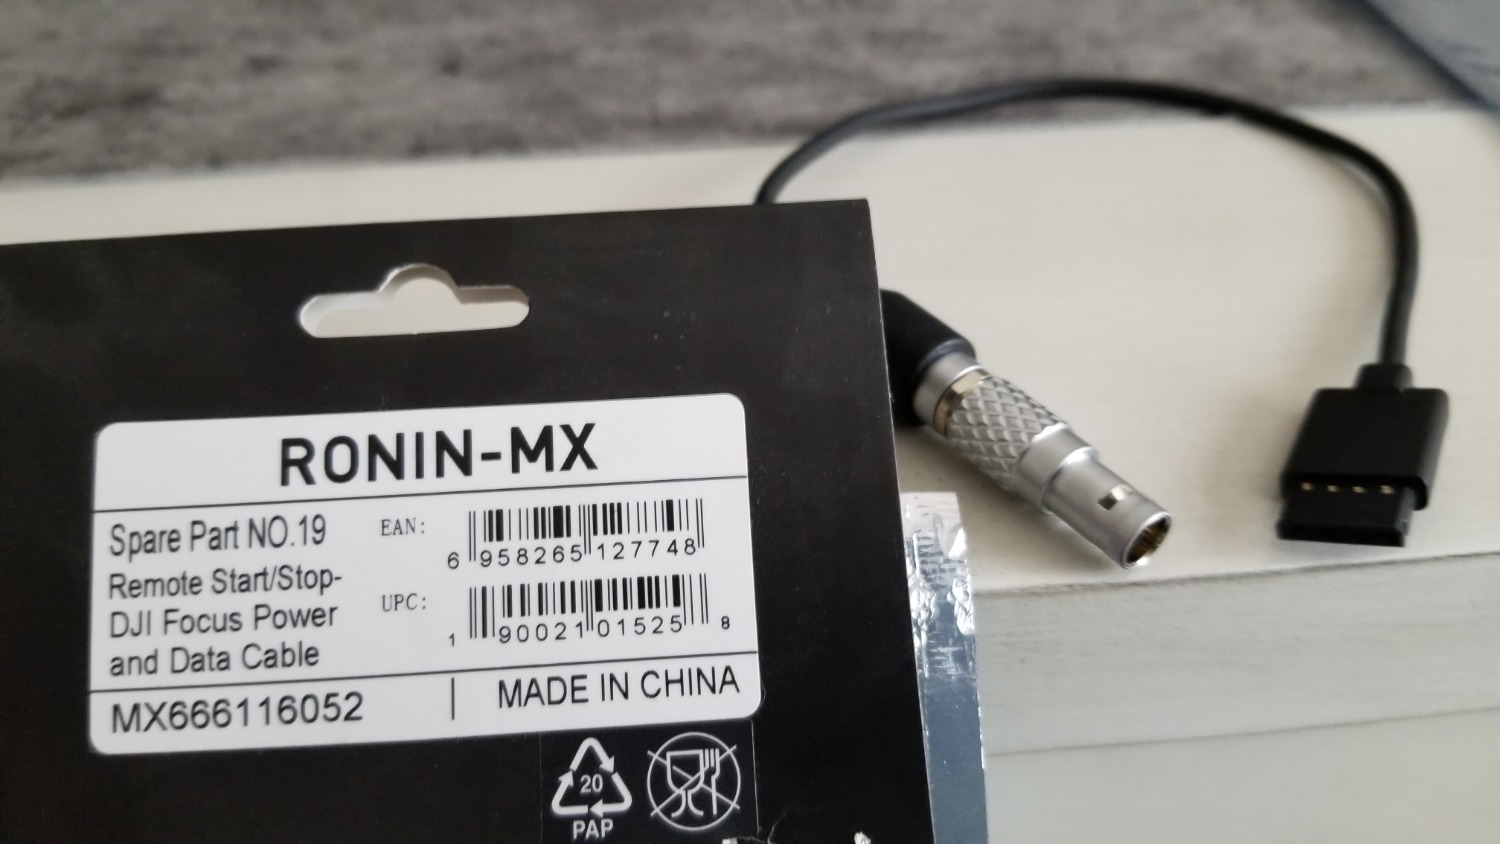 Ronin S Accessories And Follow Focus Questions Dji Forum Just Use 4 Top Bottom Connections For Each Cable The Idea Is To Power Motor So That My Assistant Can Pull Manual Threw Wireless System